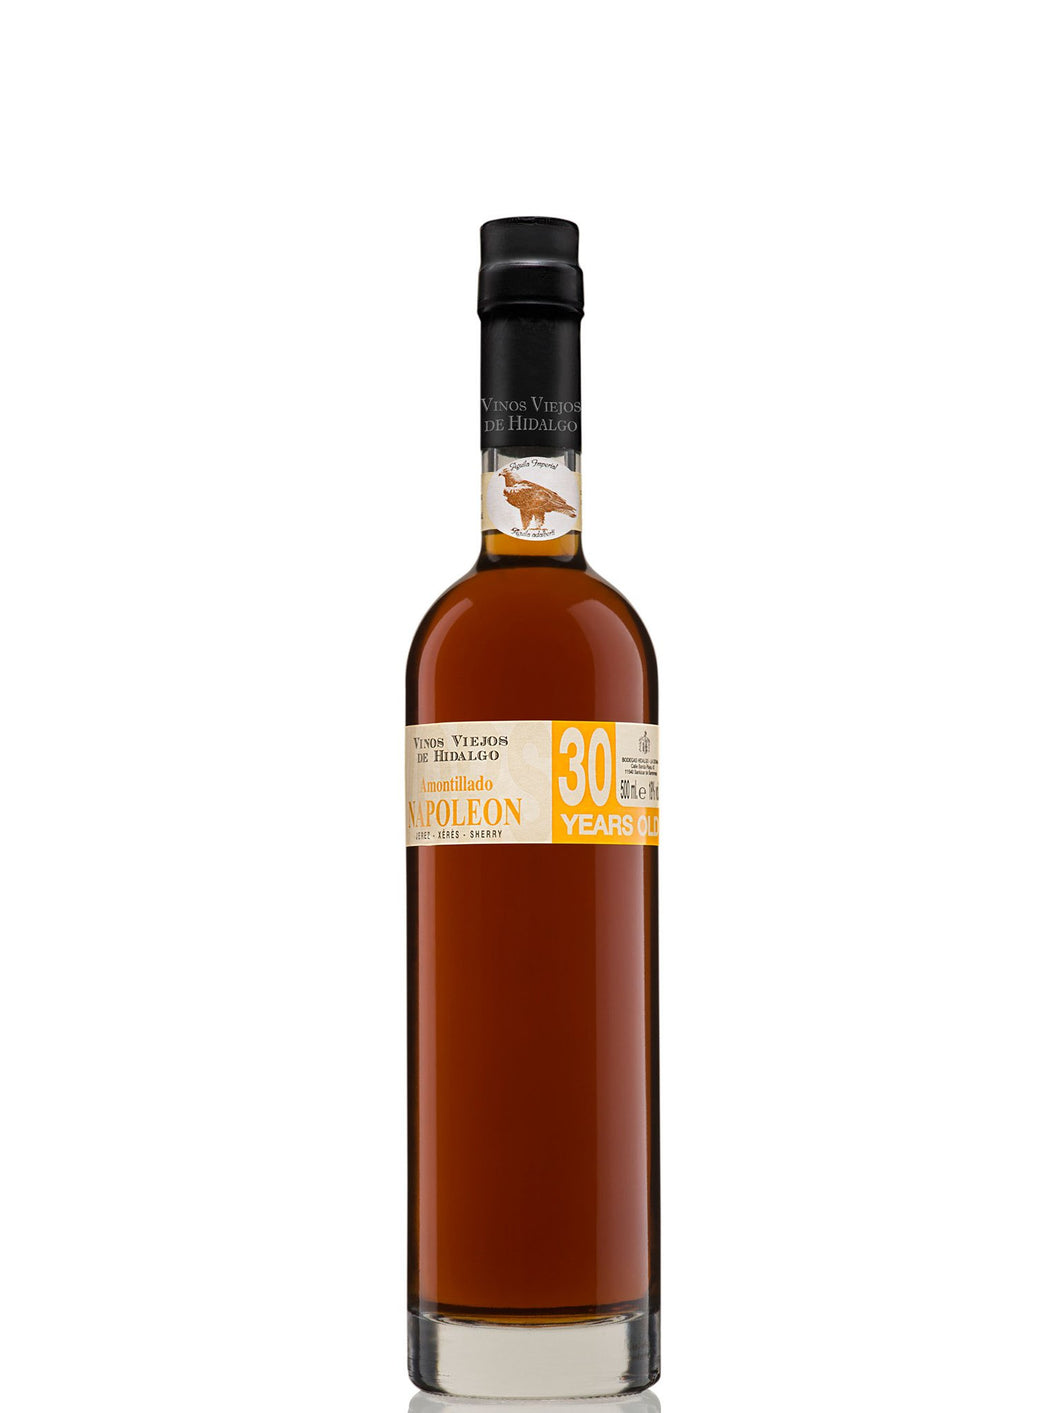 Hidalgo Napoleon 30 Year Old Amontillado Sherry 500ml